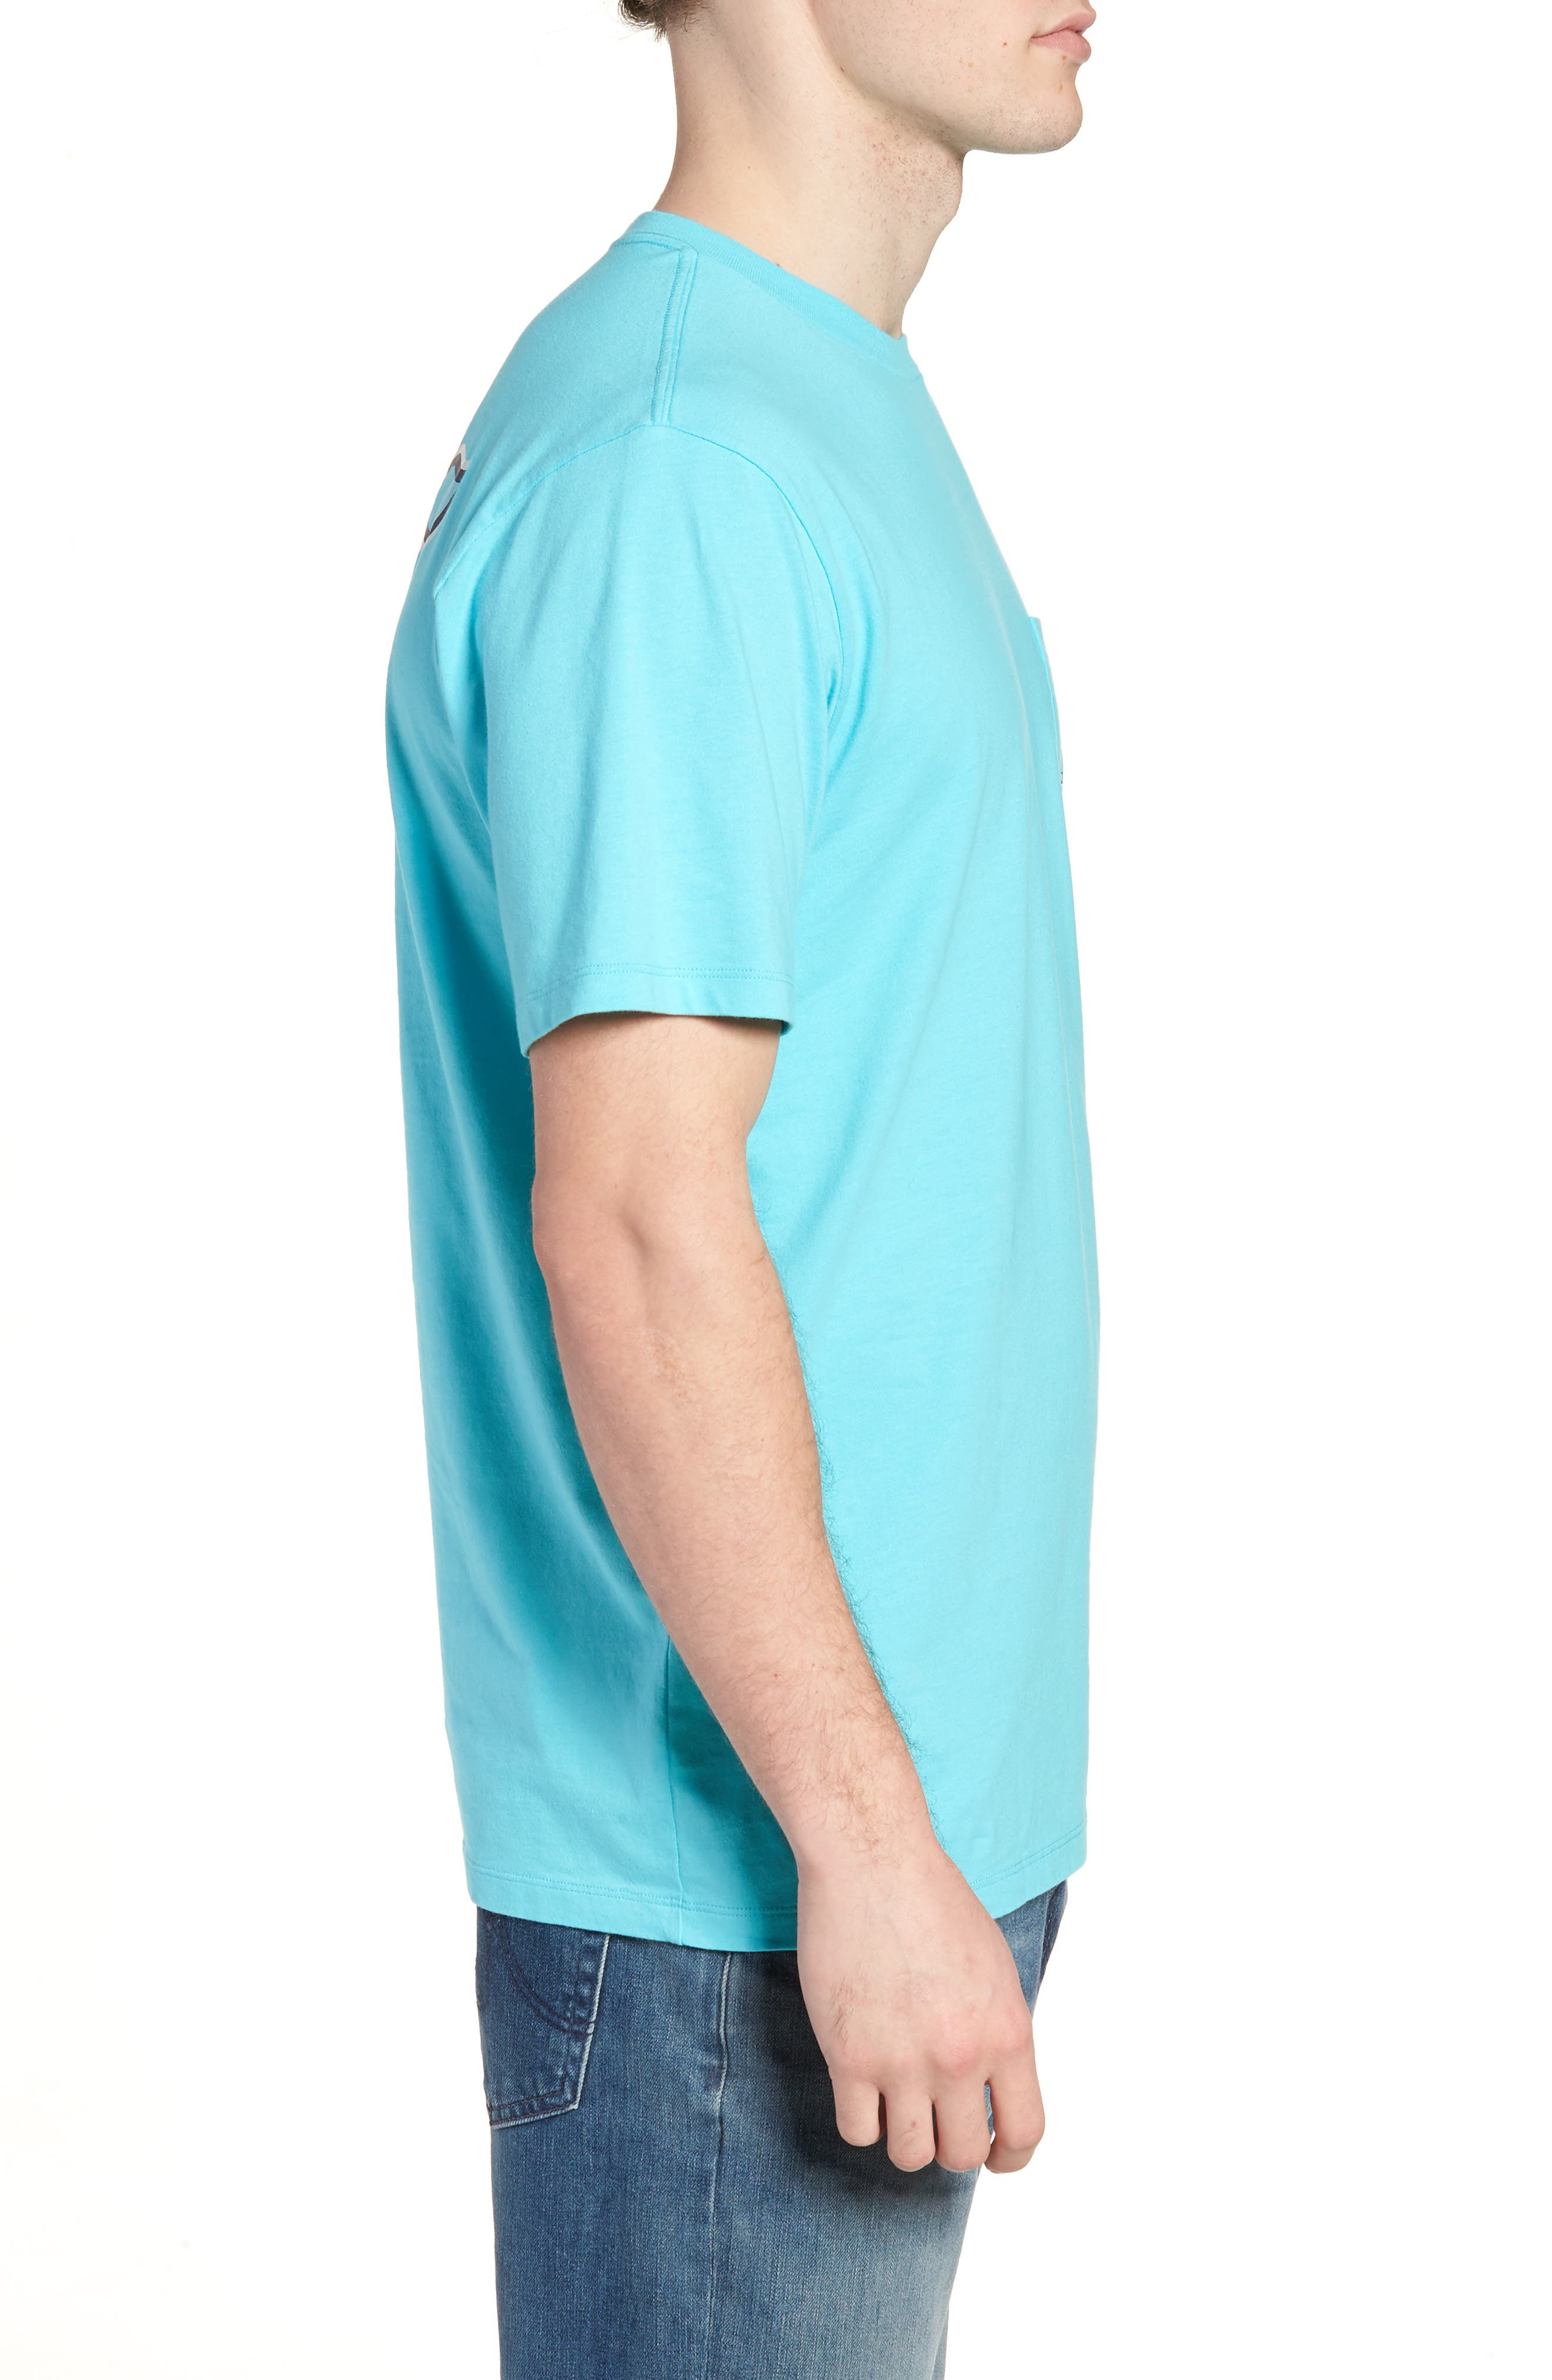 Marlin out of Water Whale Fill Pocket T-Shirt,                             Alternate thumbnail 3, color,                             Turquoise